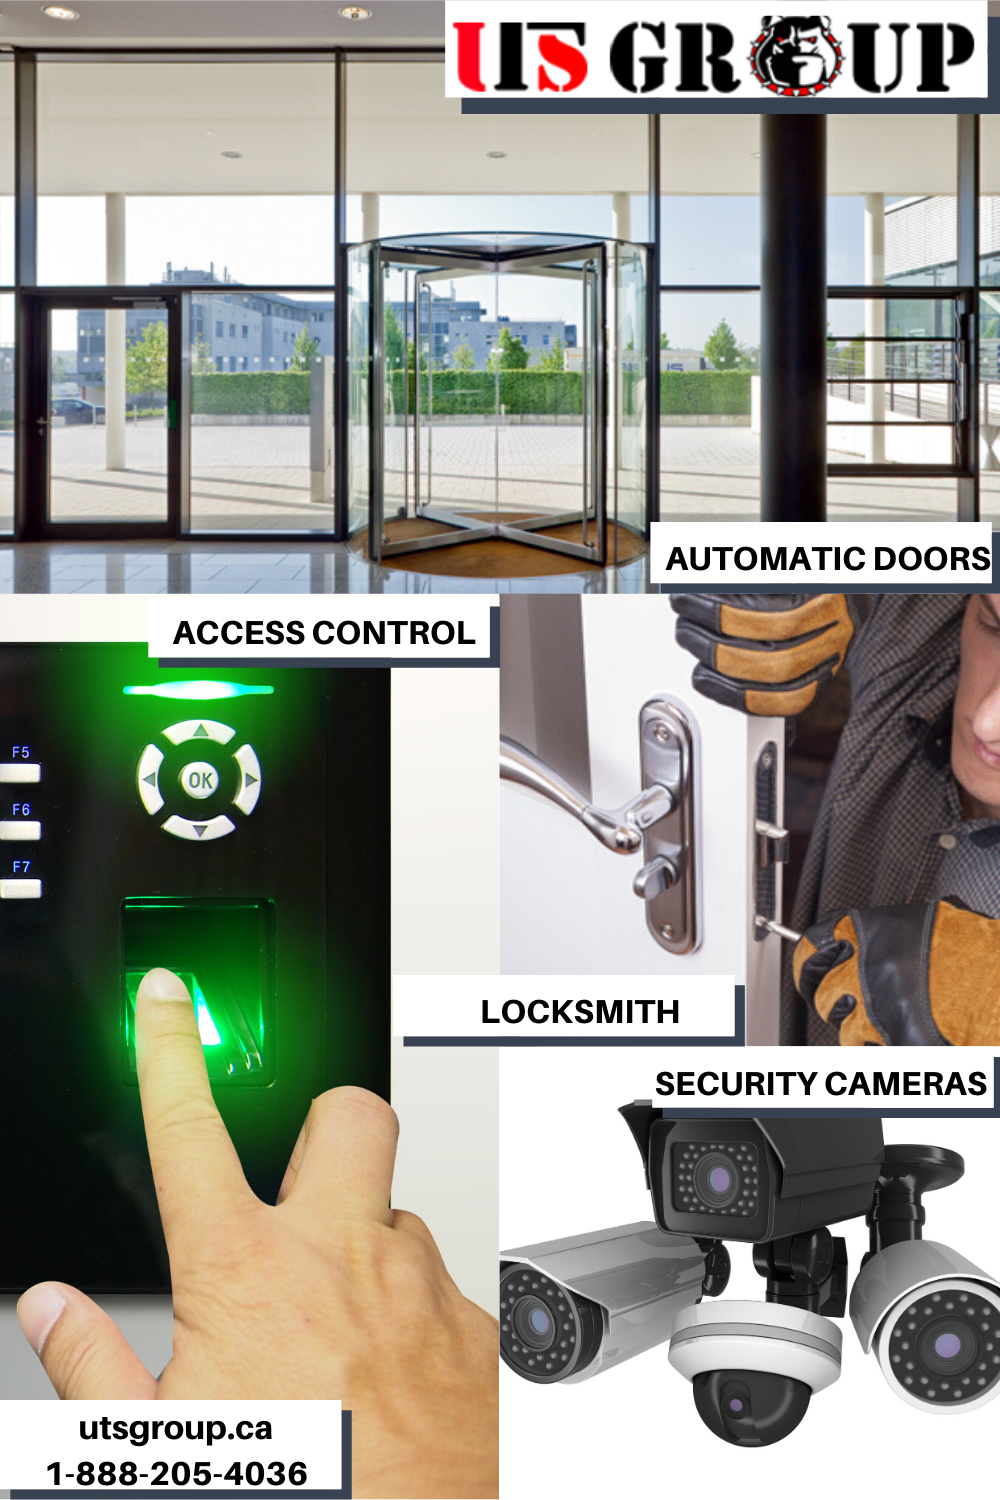 Hi We Are Uts Group The 1 Access Control Automatic Doors Locksmith Security Cameras Company In 2020 Access Control Access Control System Camera Supplies